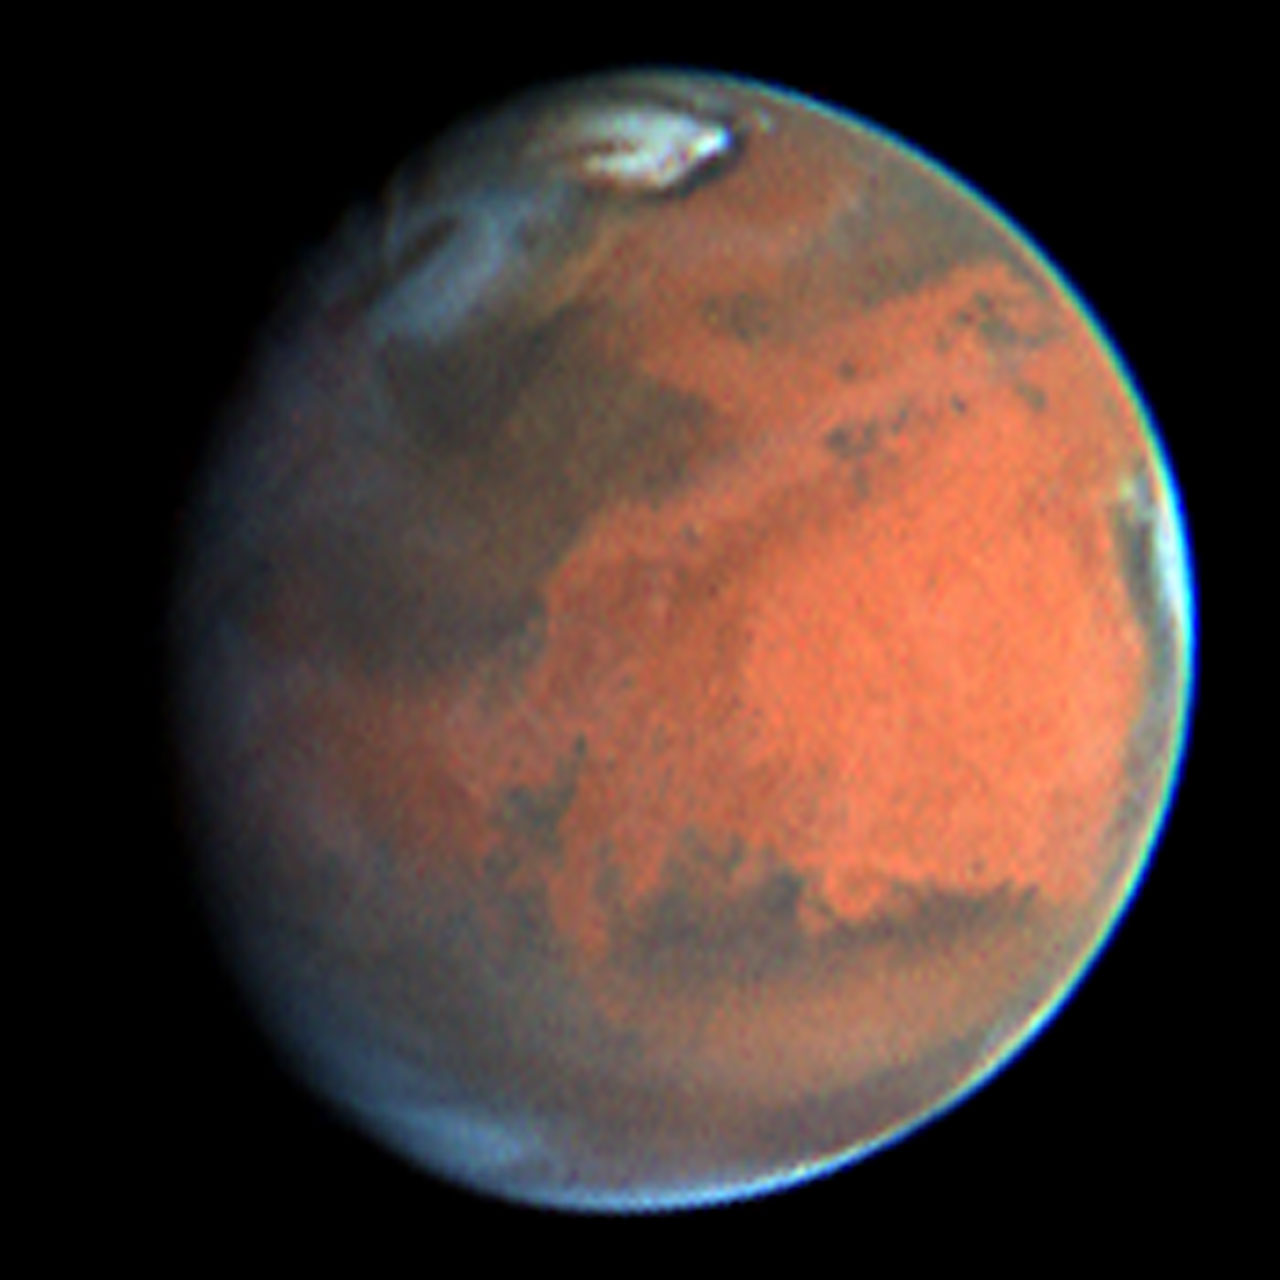 hubble images of mars - photo #19